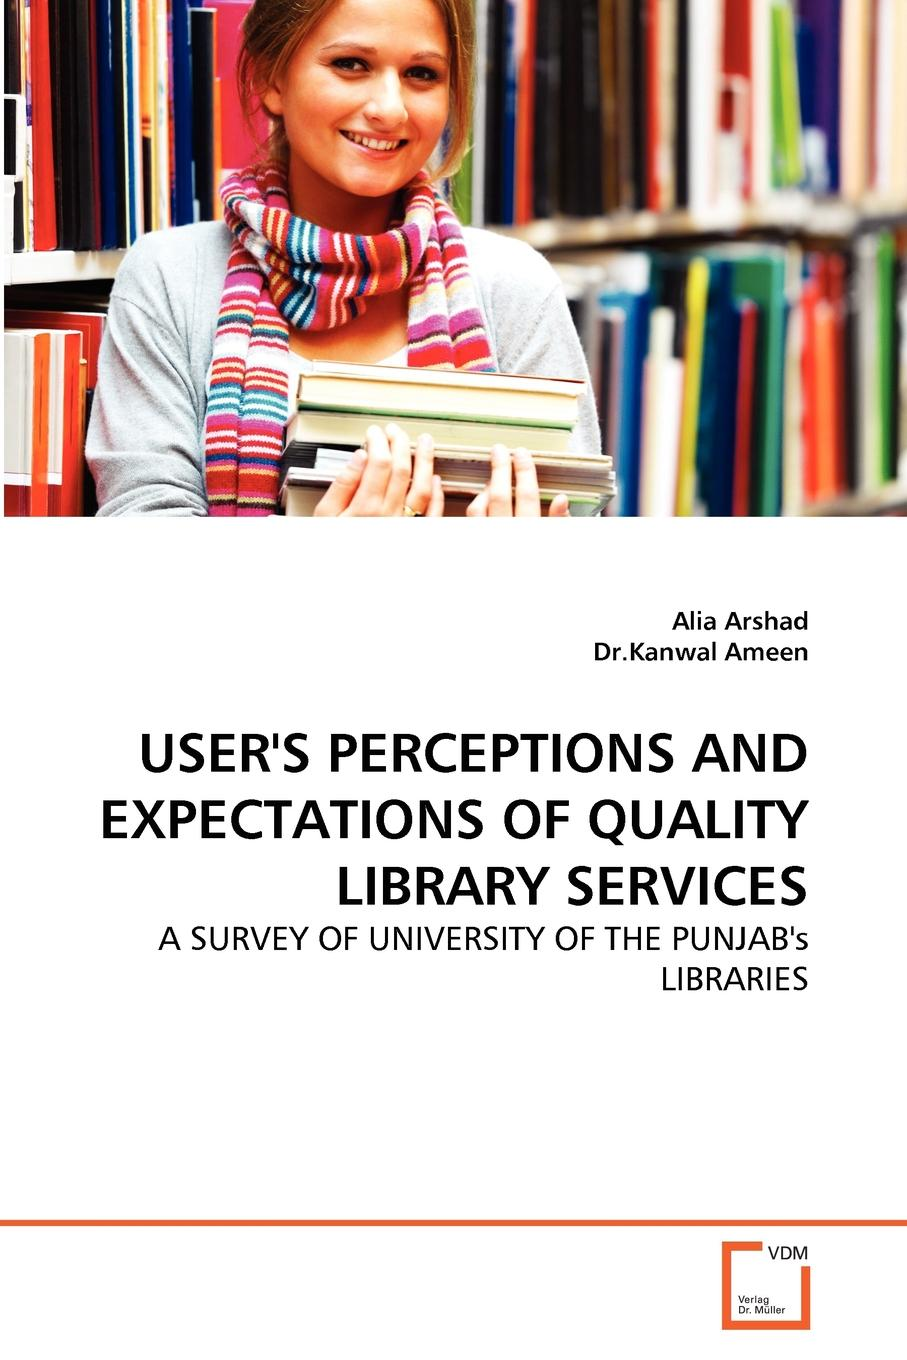 Alia Arshad, Dr.Kanwal Ameen USER.S PERCEPTIONS AND EXPECTATIONS OF QUALITY LIBRARY SERVICES цена